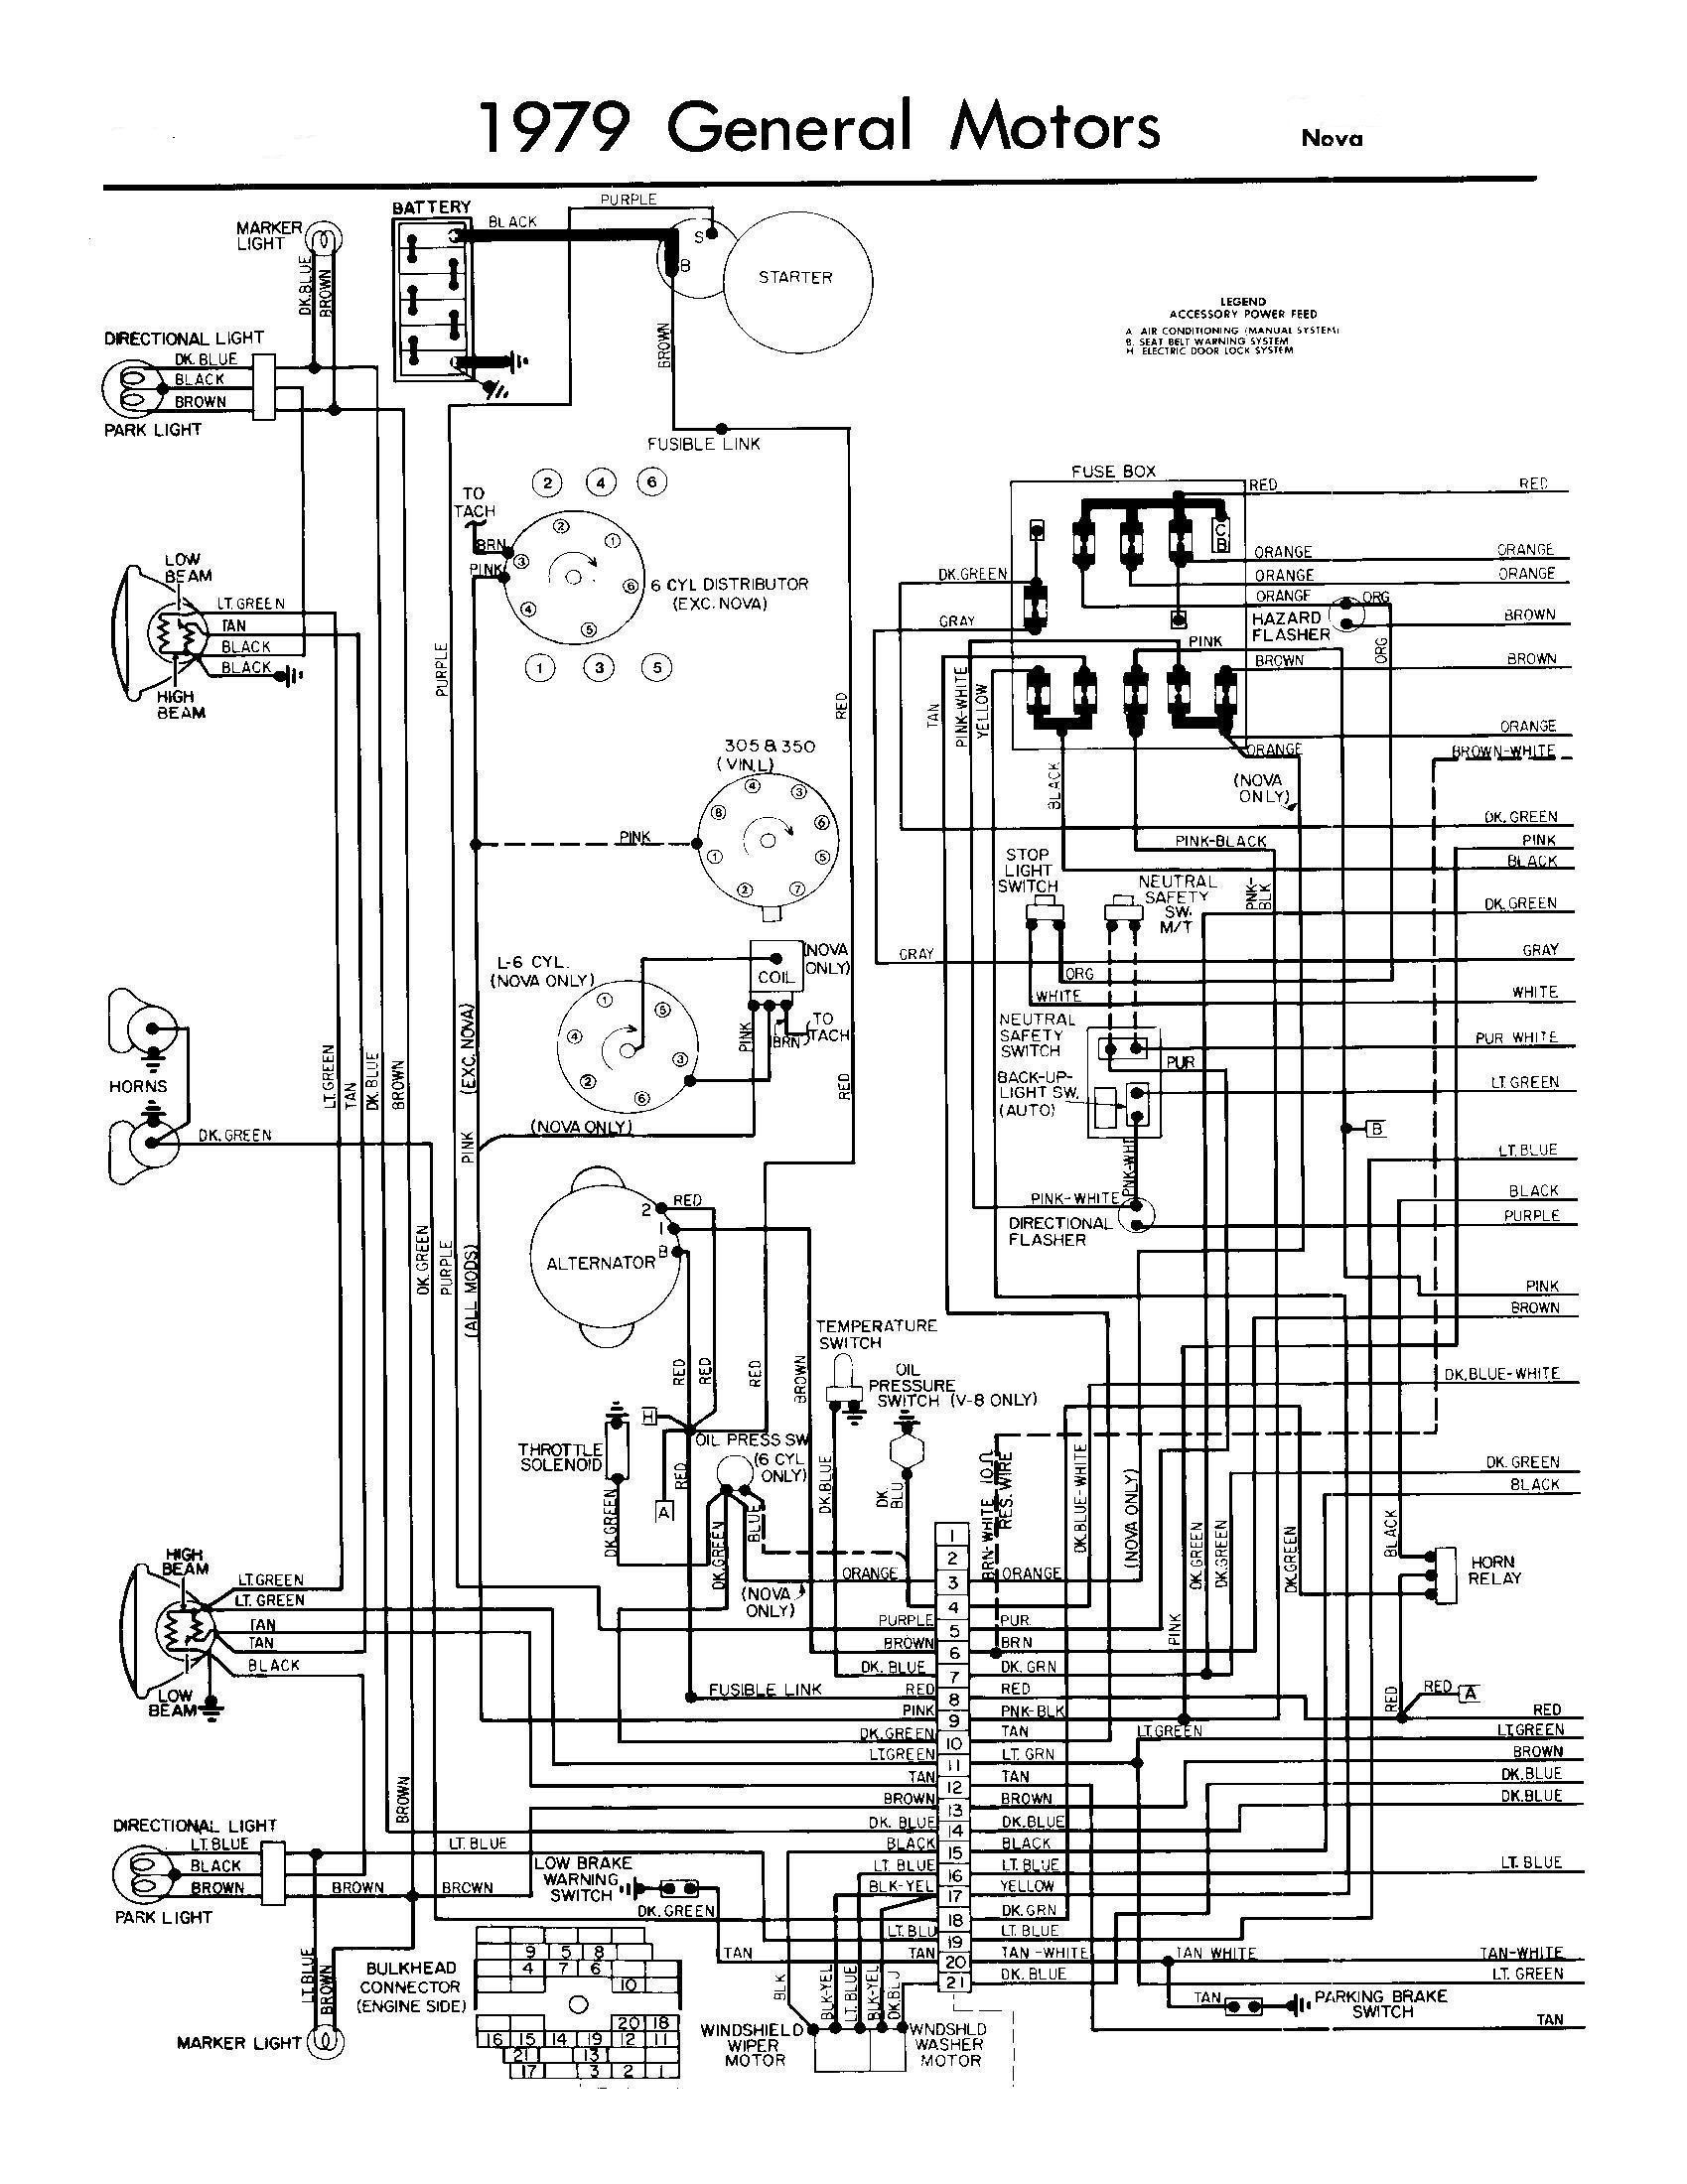 Farmall 240 Wiring Diagram | Wiring Diagram on ih 1466 exhaust, ford dexta wiring diagram, jd 4010 wiring diagram, ih 1466 cooling system, jd 3010 wiring diagram, ih 1466 tractor, jd 4455 wiring diagram, ih 1466 radio, ford naa wiring diagram, jd 4430 wiring diagram, jd 4020 wiring diagram, jd 4320 wiring diagram, mf 245 wiring diagram, jd 7520 wiring diagram, ford 3000 wiring diagram, ih 1466 power, ih 1466 brochure, ford 8340 wiring diagram,